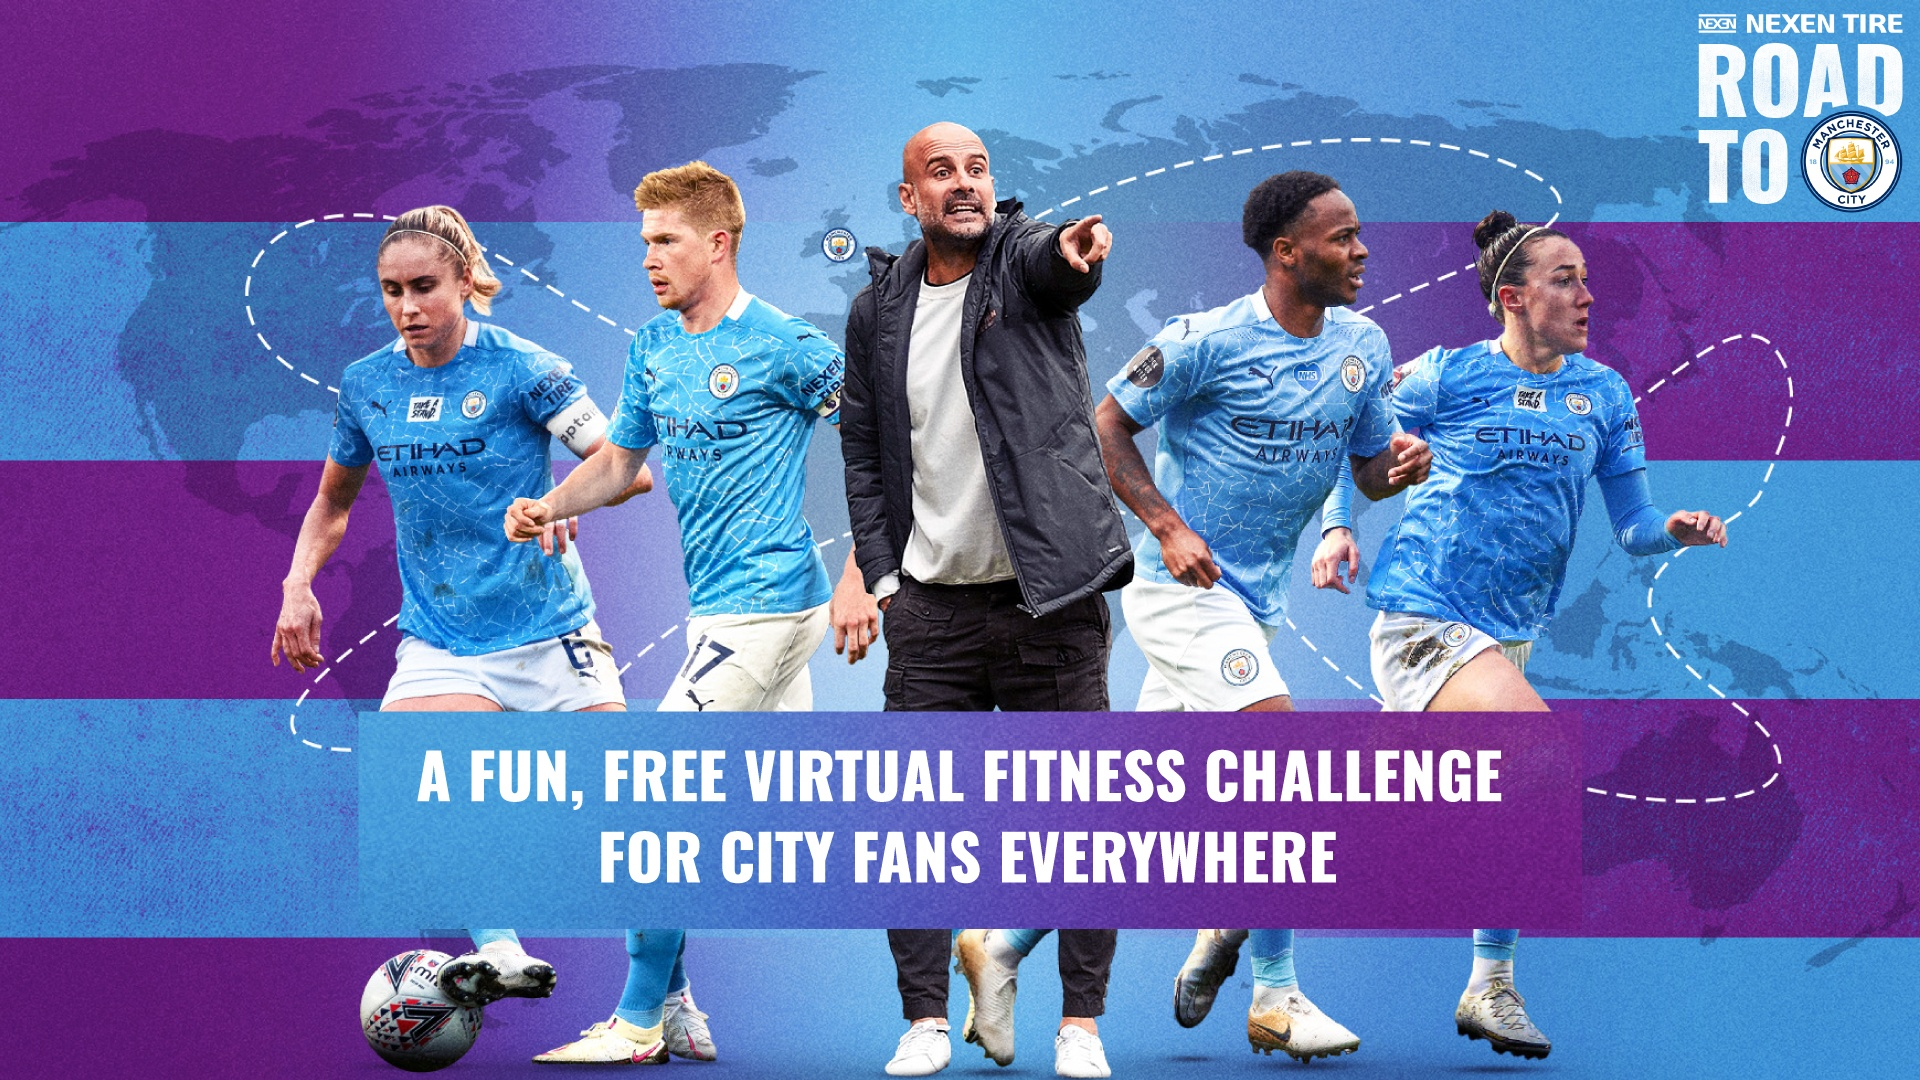 MANCHESTER CITY AND NEXEN TIRE BRING NEW VIRTUAL FITNESS CHALLENGE